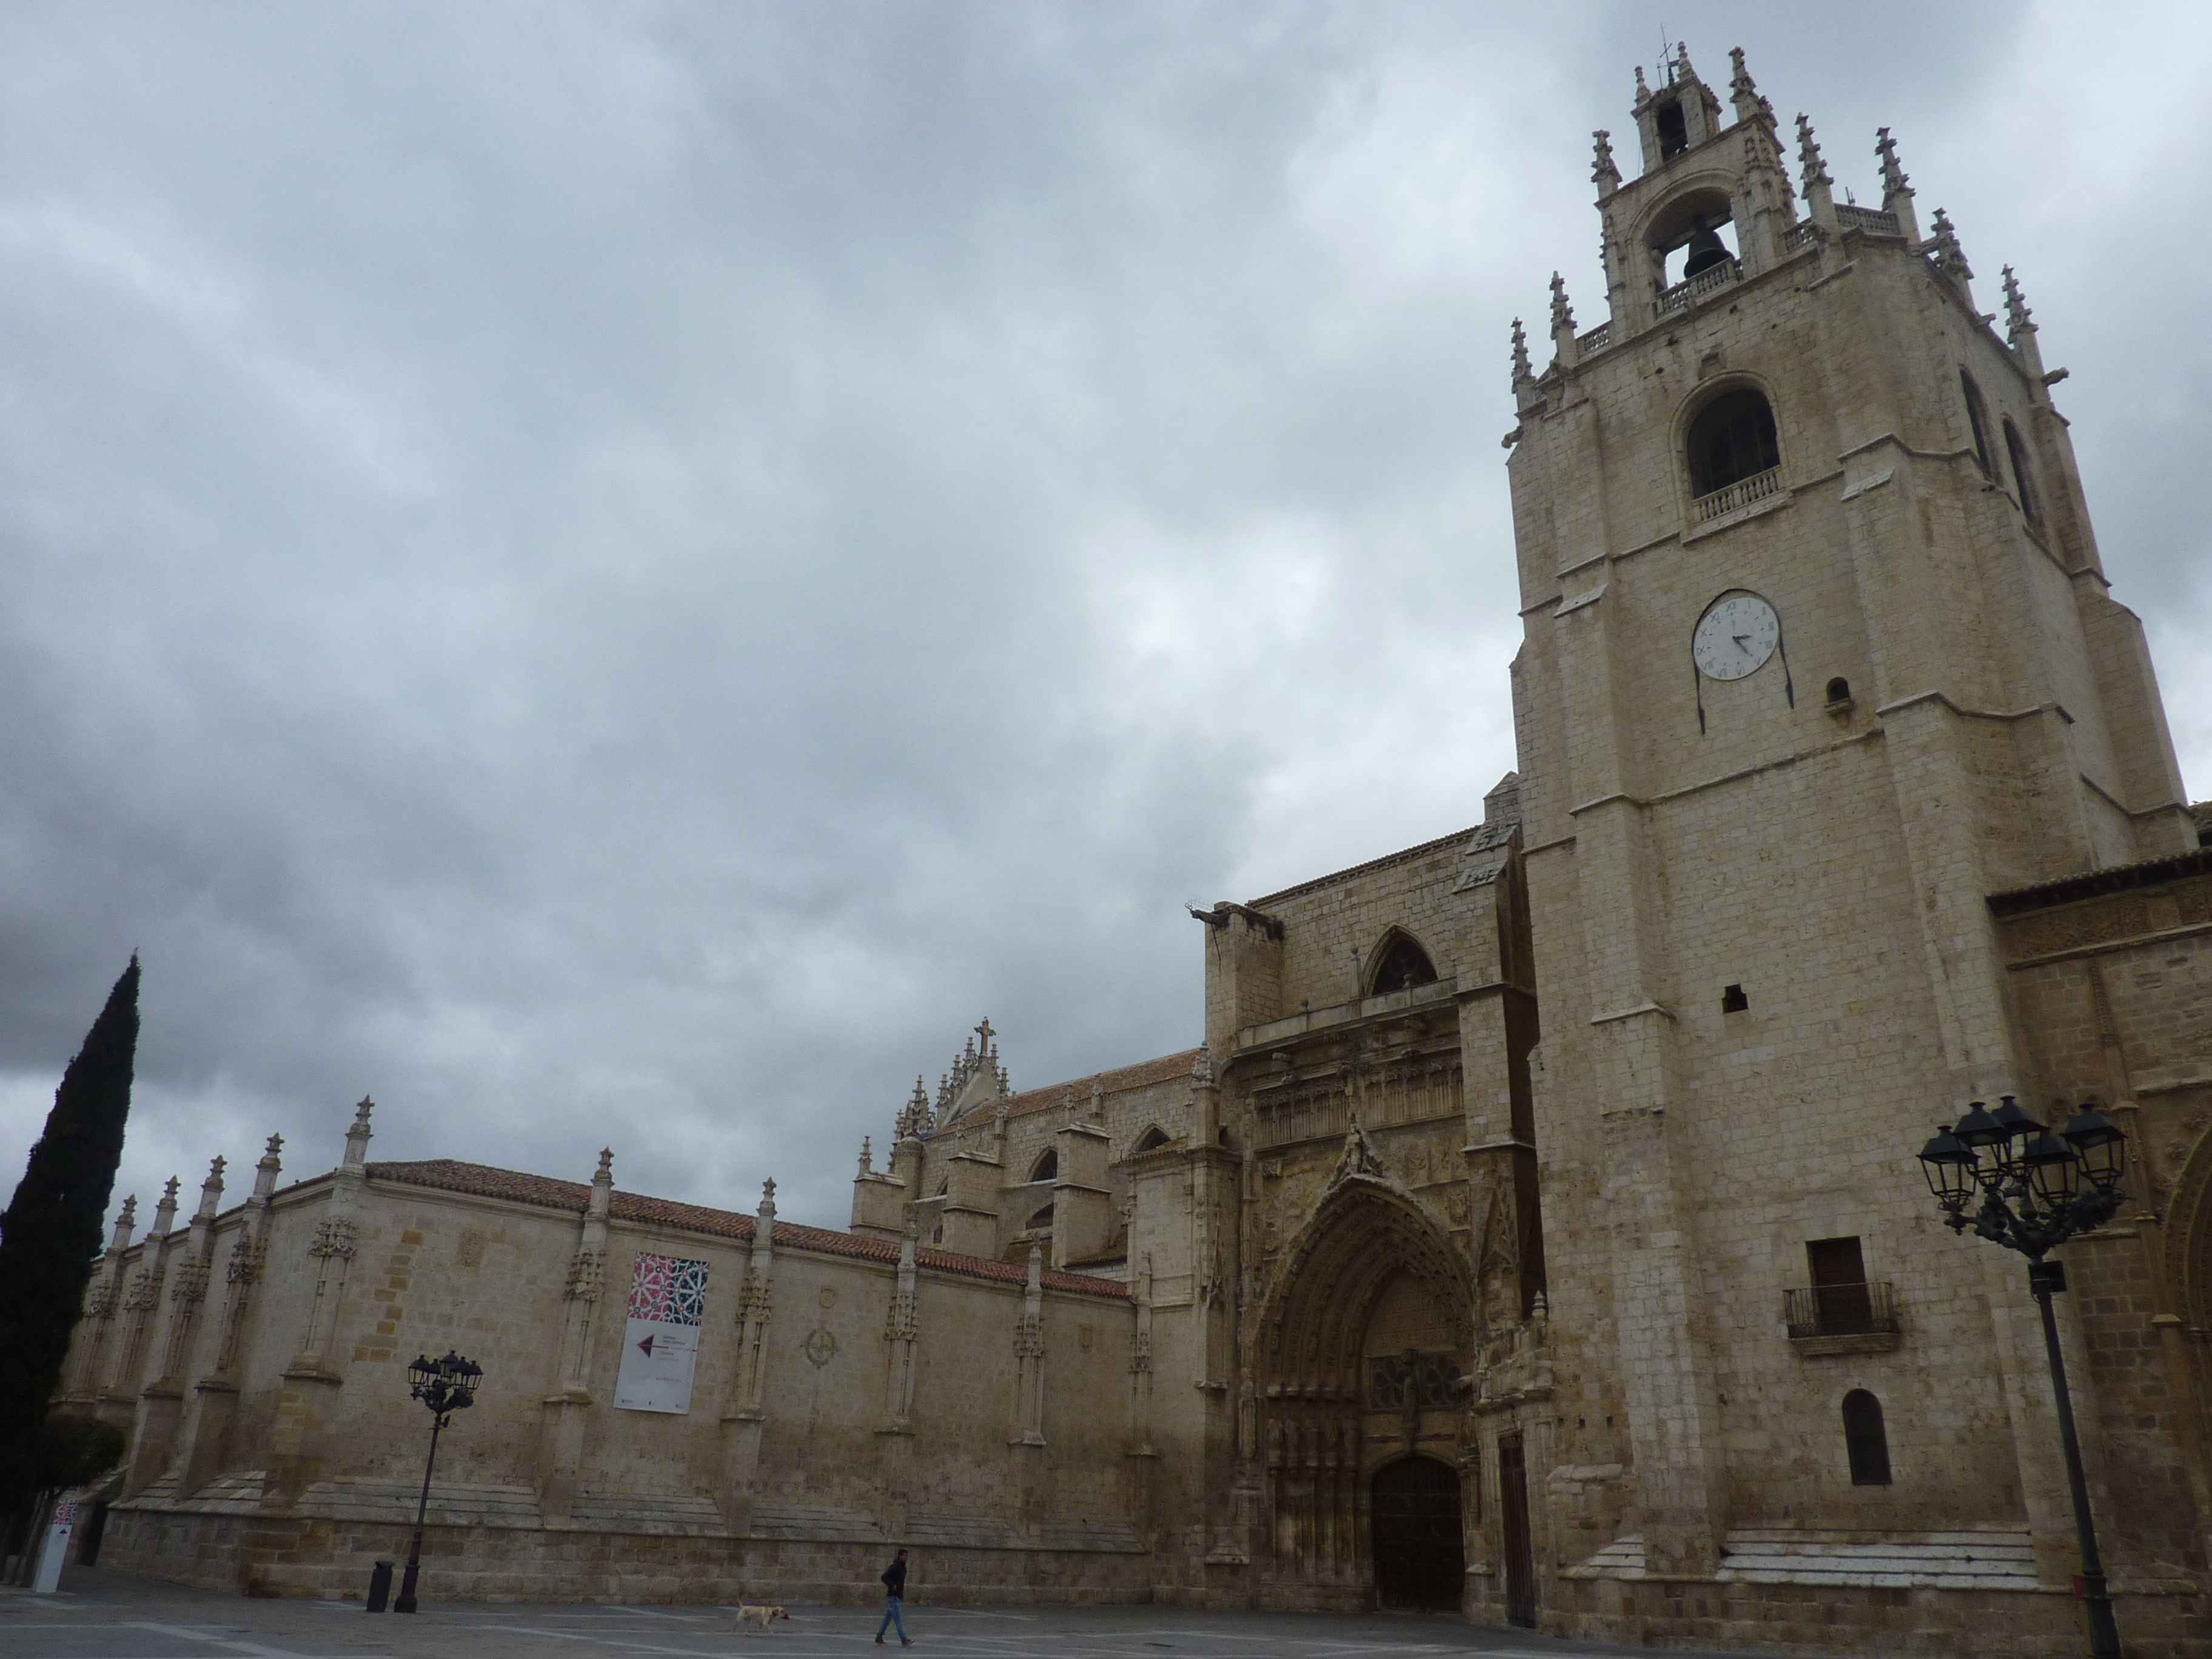 Belle Cathedrale De Palencia en Images